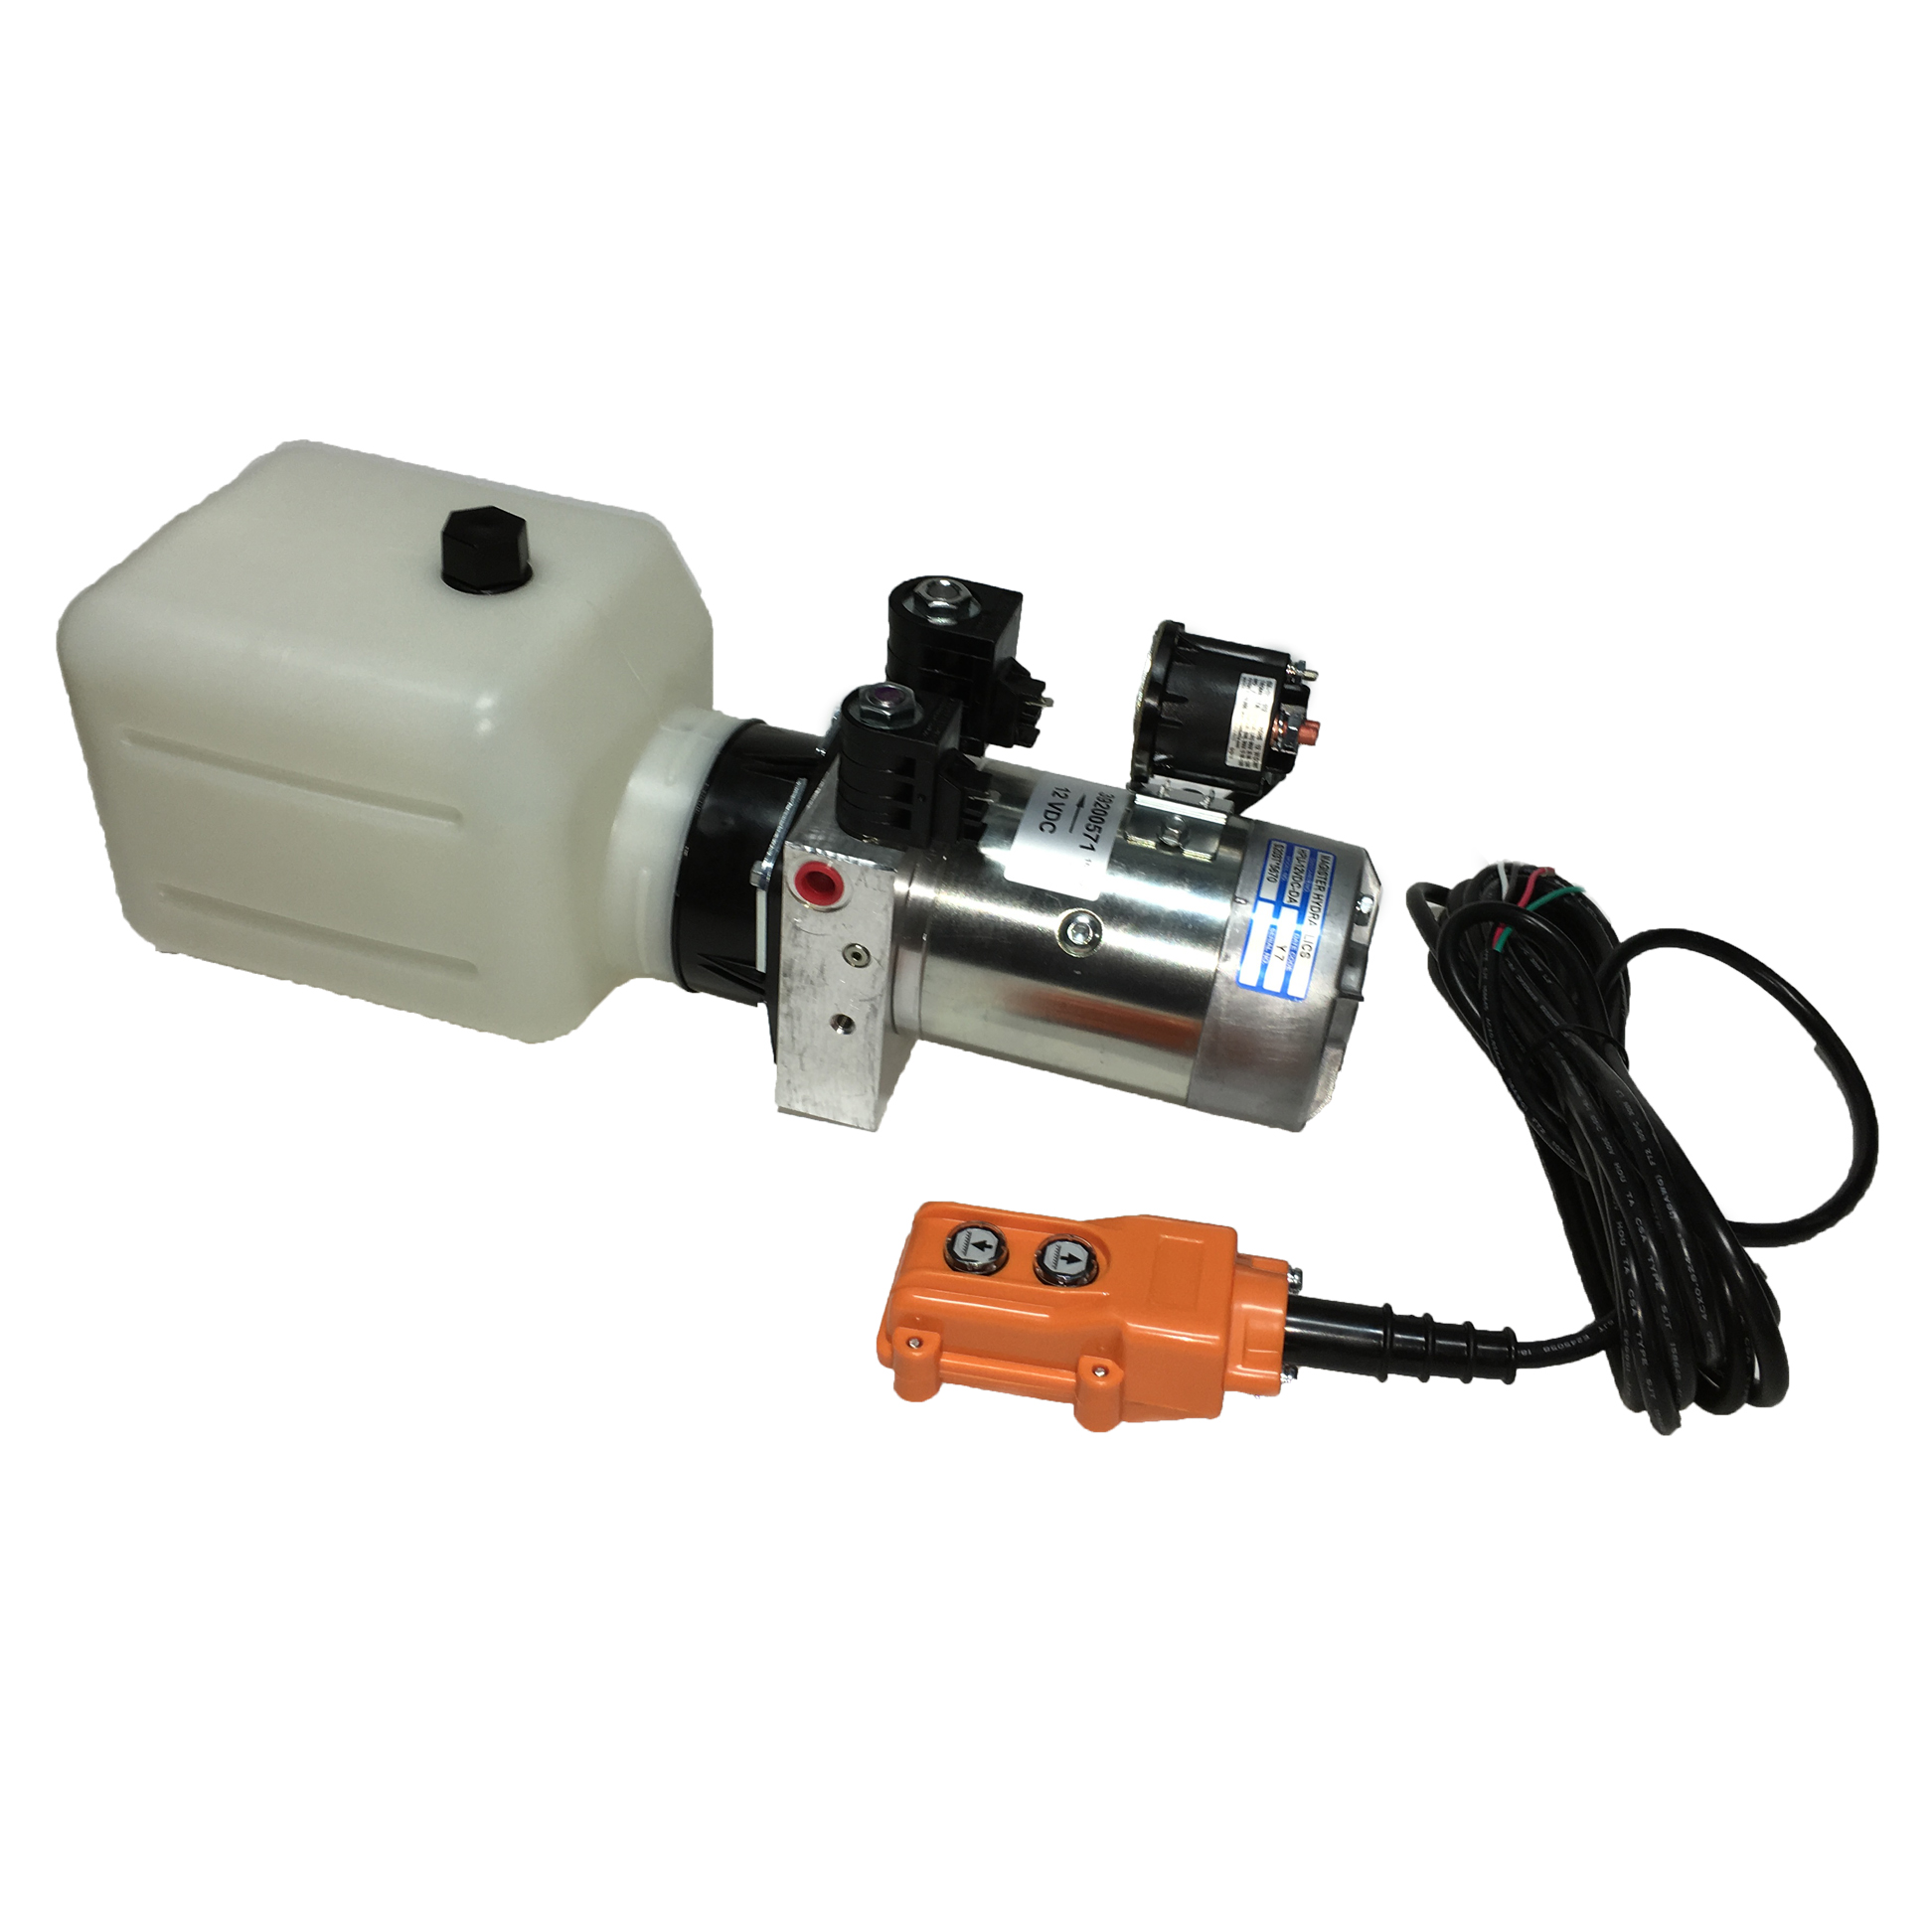 10 qts power unit 12V DC double acting by MTE